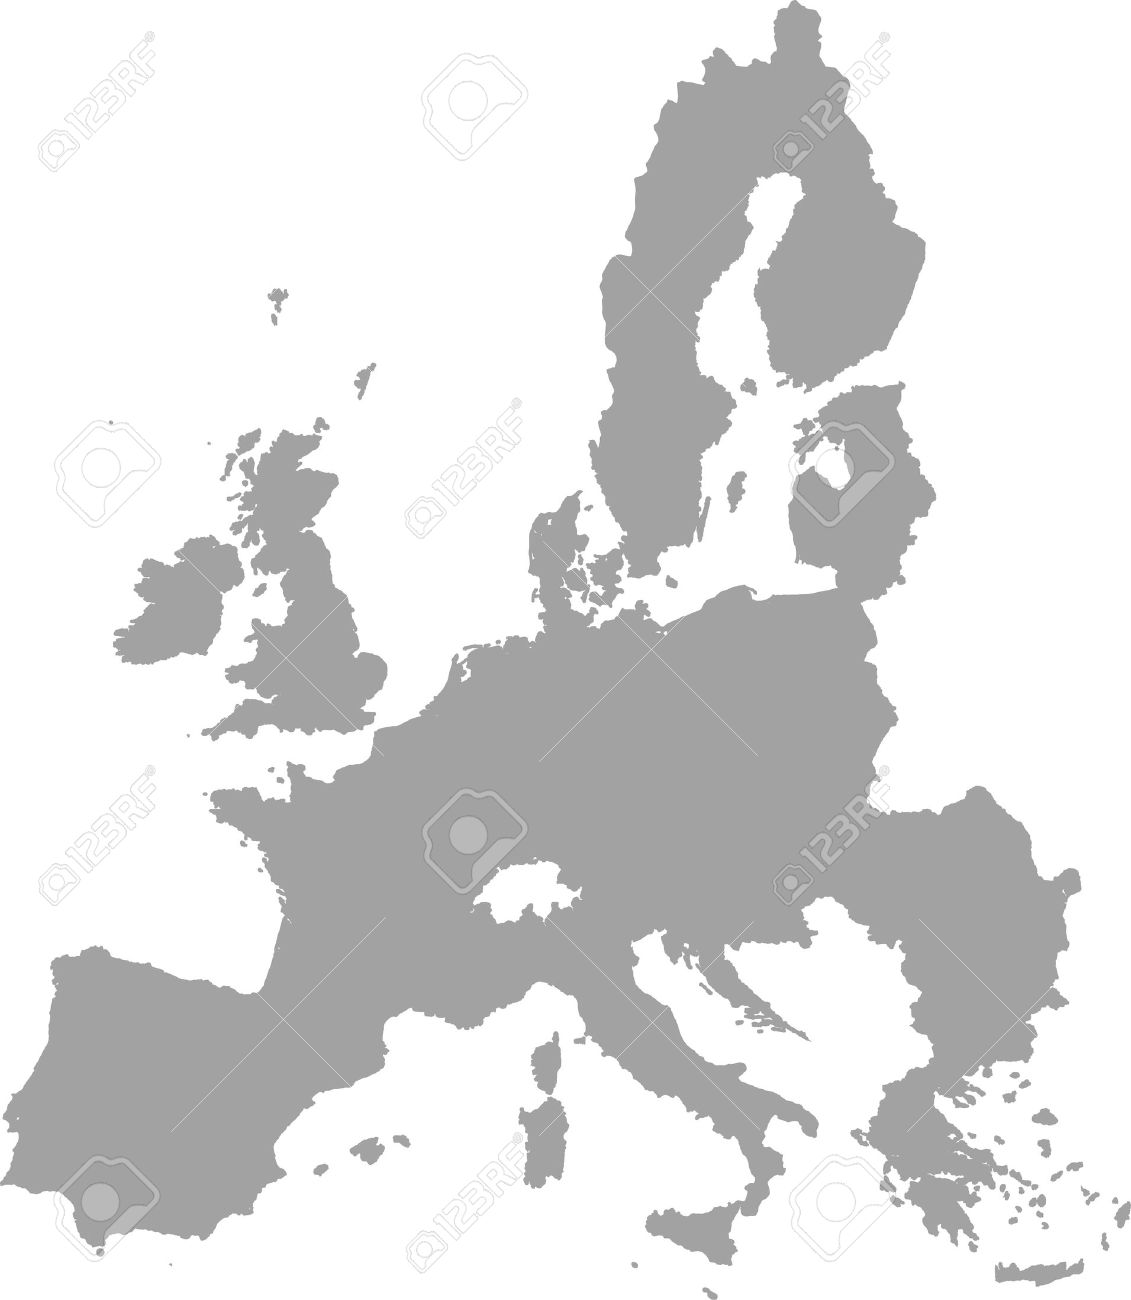 European Union Map Outline Vector In Gray Color Royalty Free